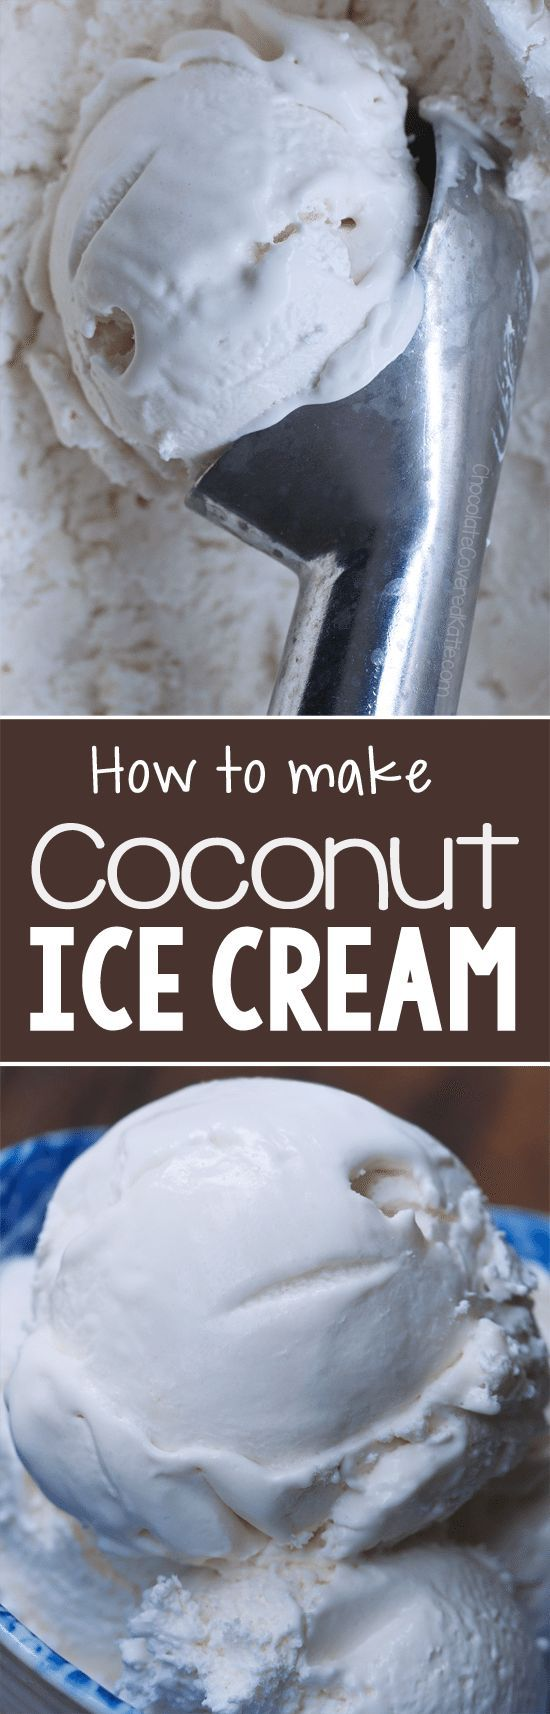 Creamy, dairy-free coconut ice cream you can make at home, no ice cream maker required! The ice cream can be made with just FOUR ingredients: Coconut Milk Vanilla Sweetener Pinch of Salt In just a f